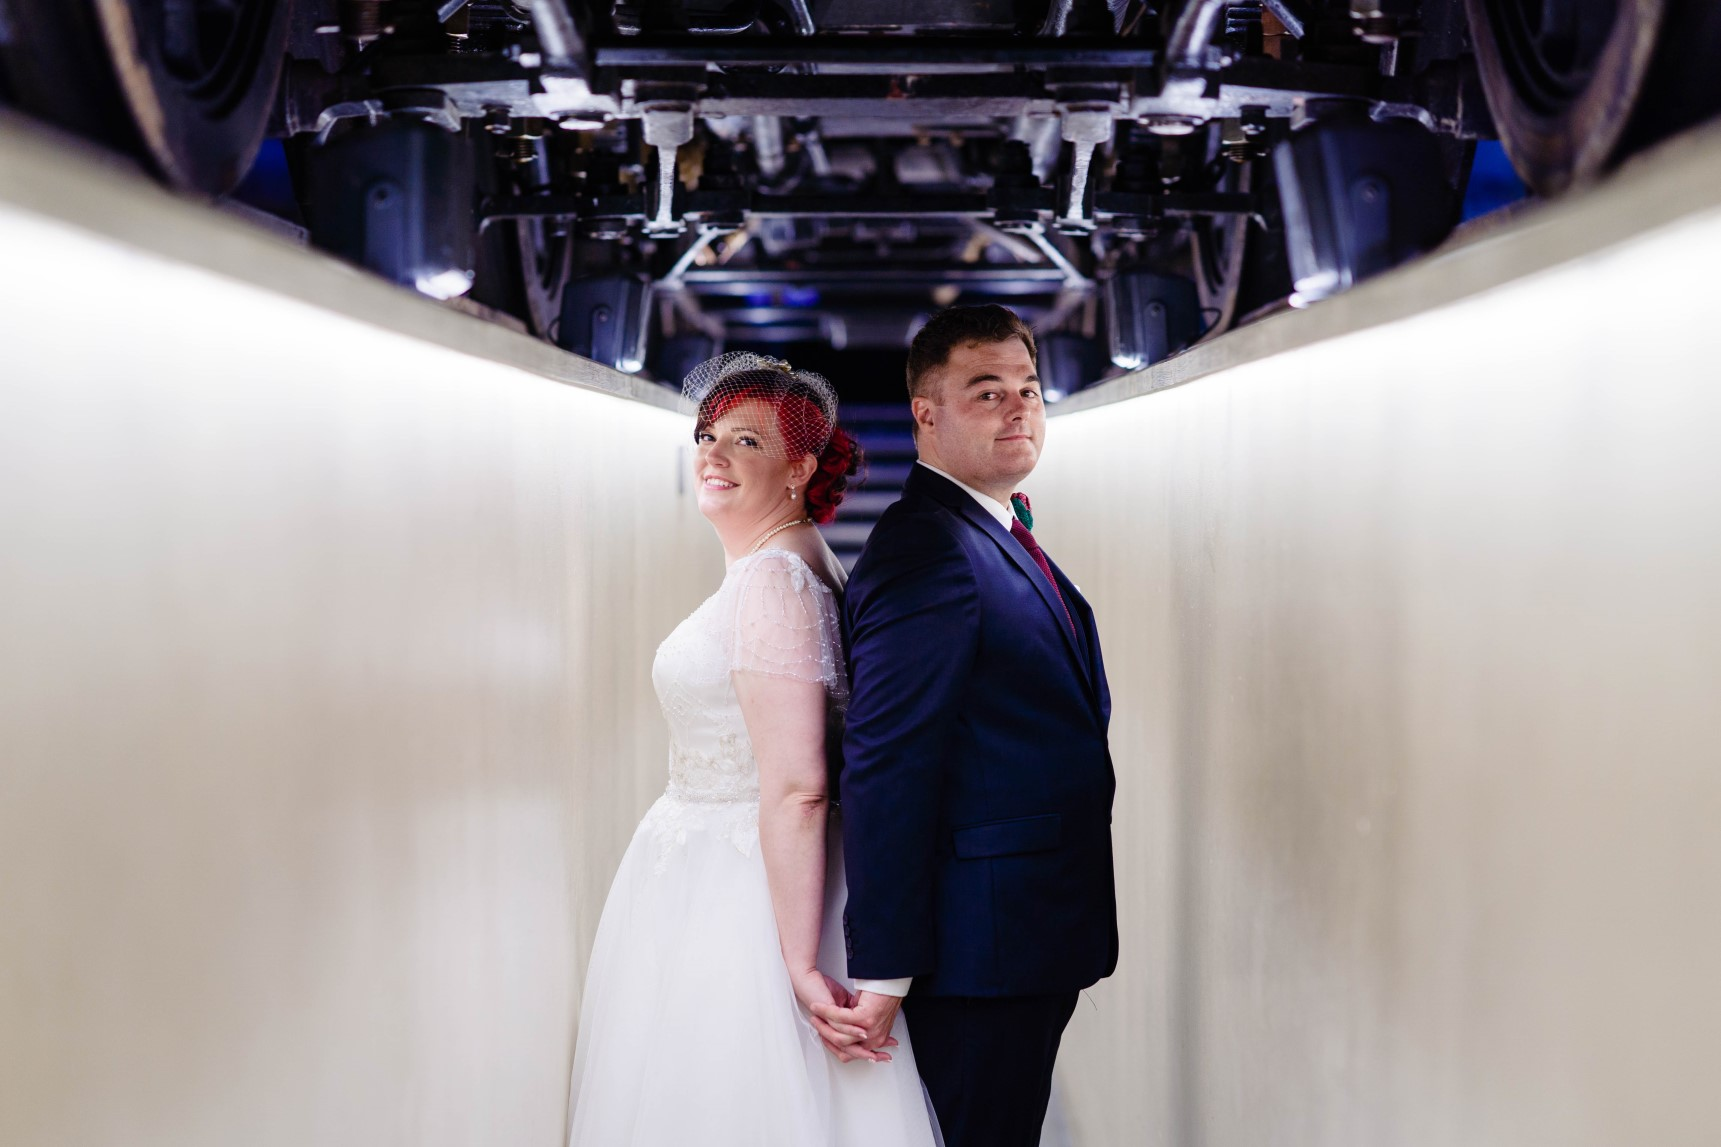 Industrial Railway Wedding- Vicki Clayson Photography- Unconventional Wedding- Unique Wedding Venue- wedding photo under train